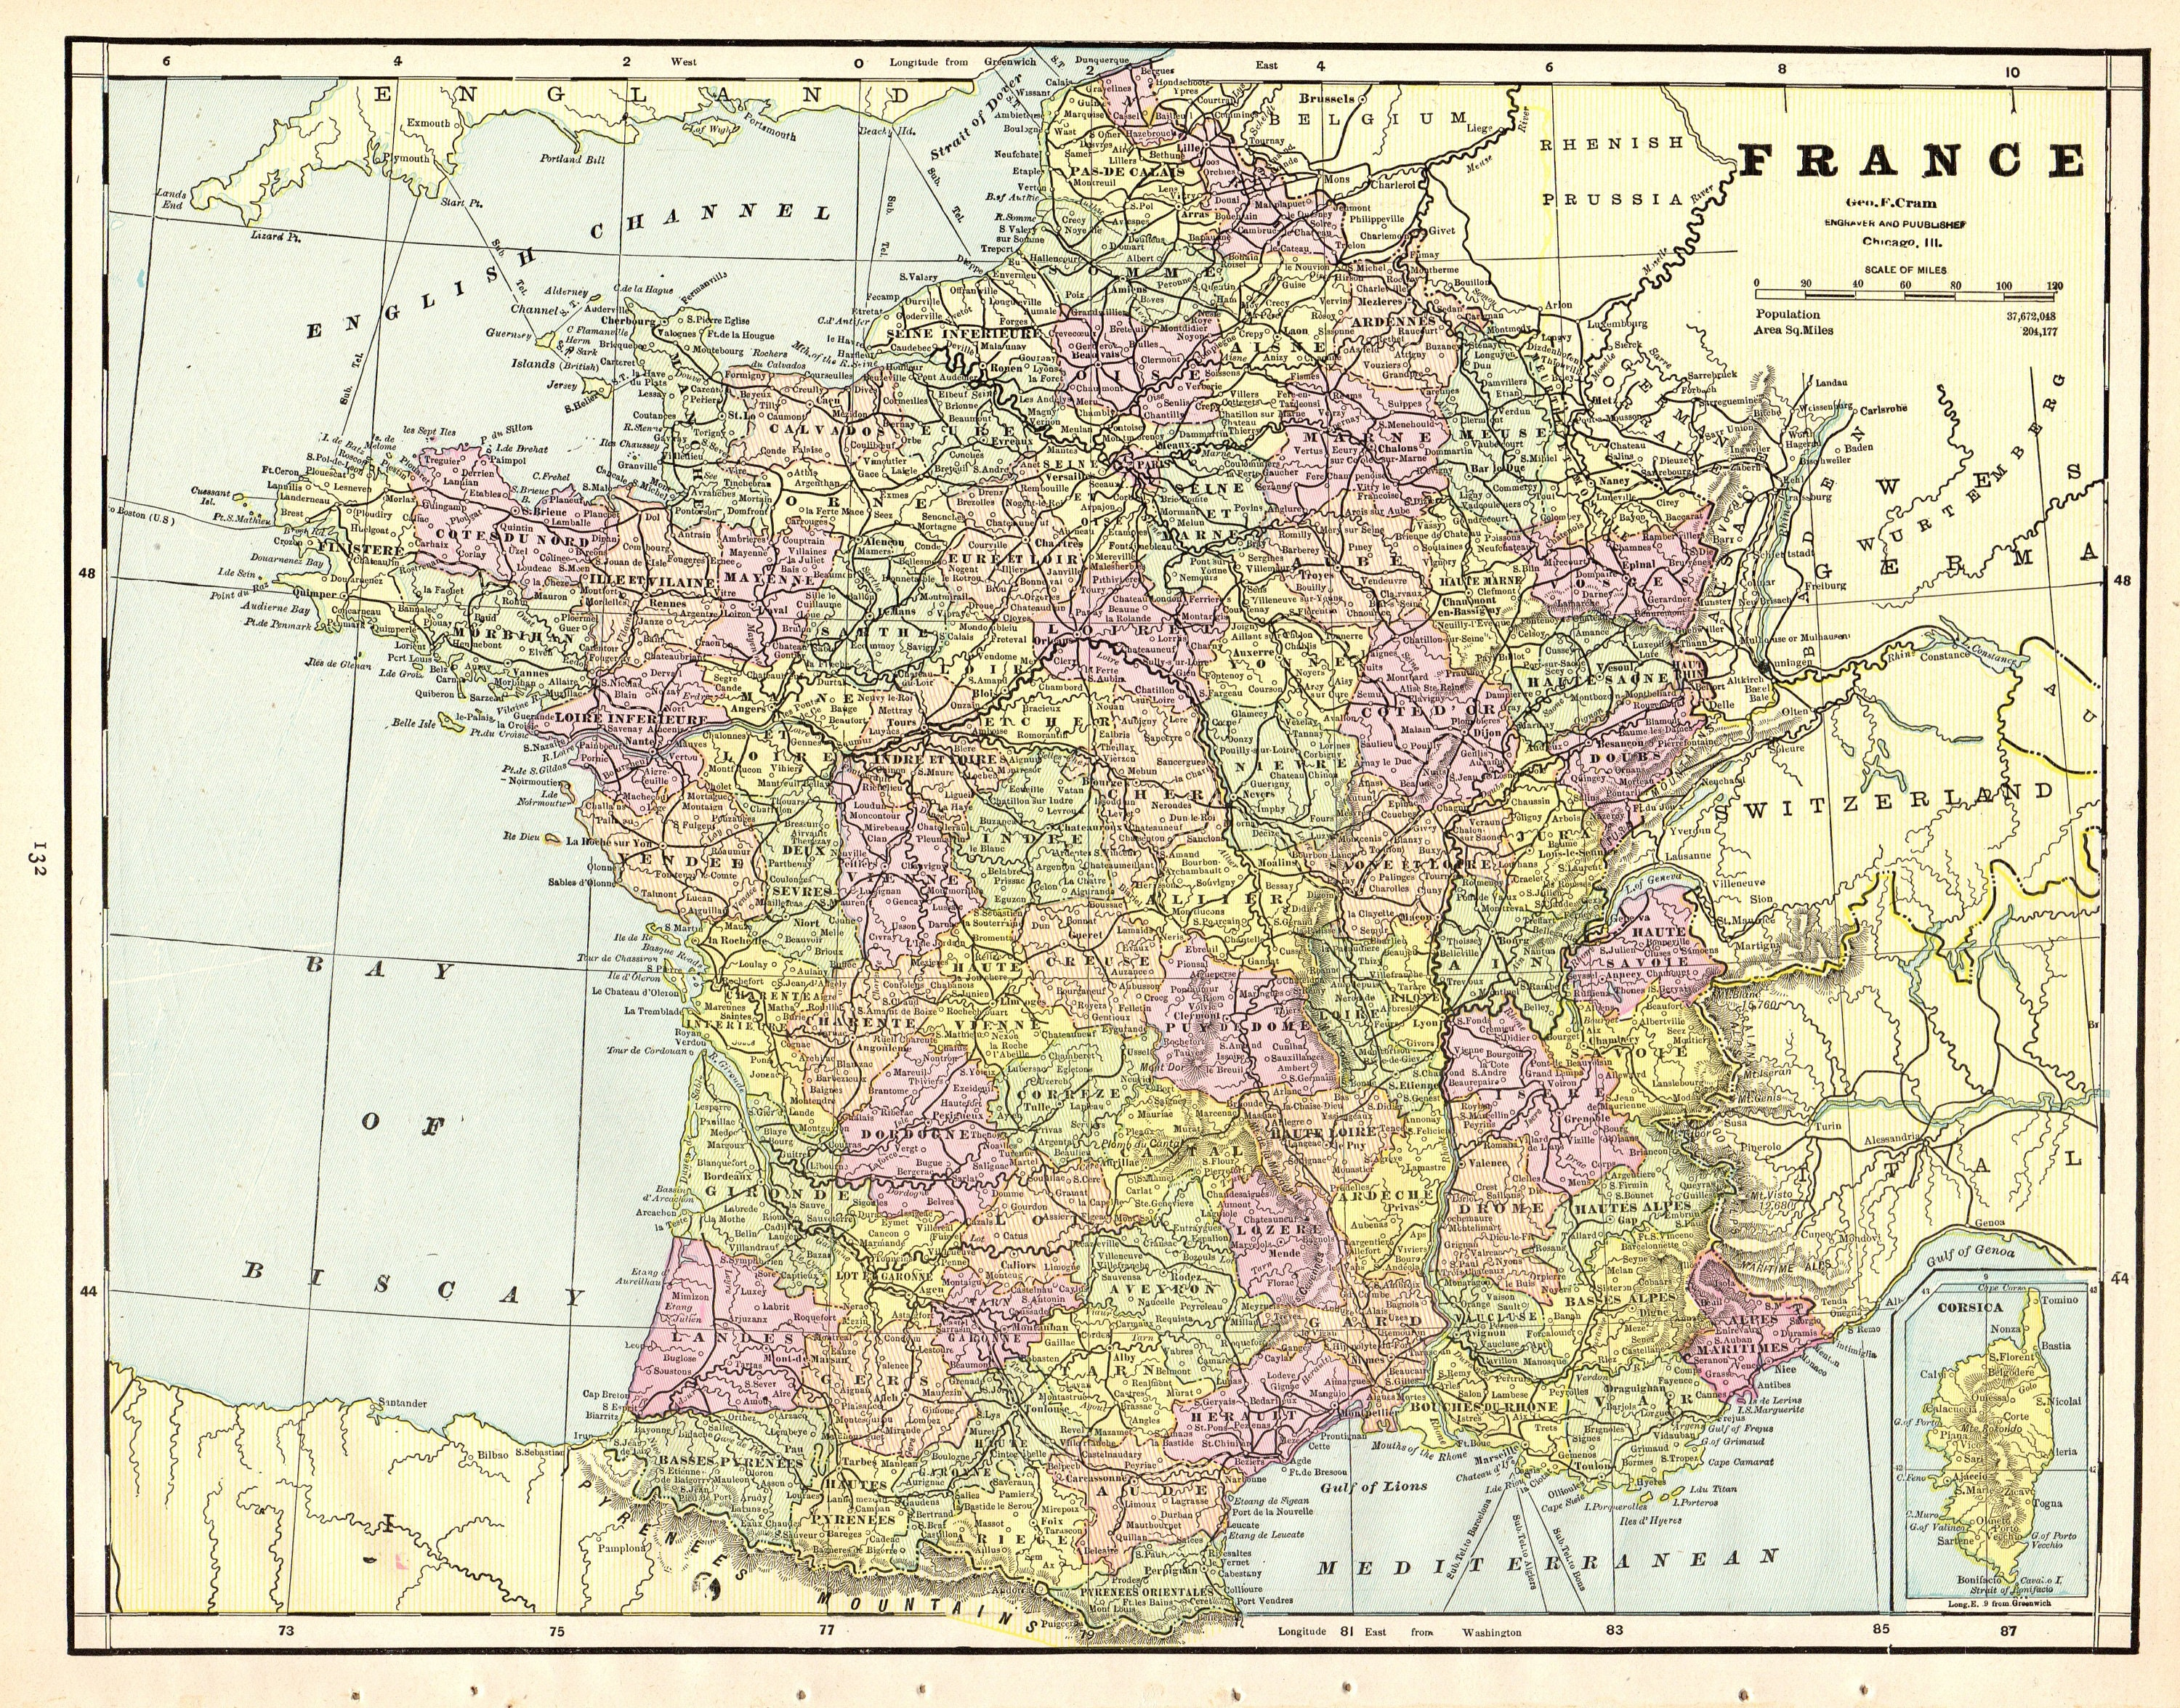 1892 Antique FRANCE Map of France Print Vintage Gallery Wall